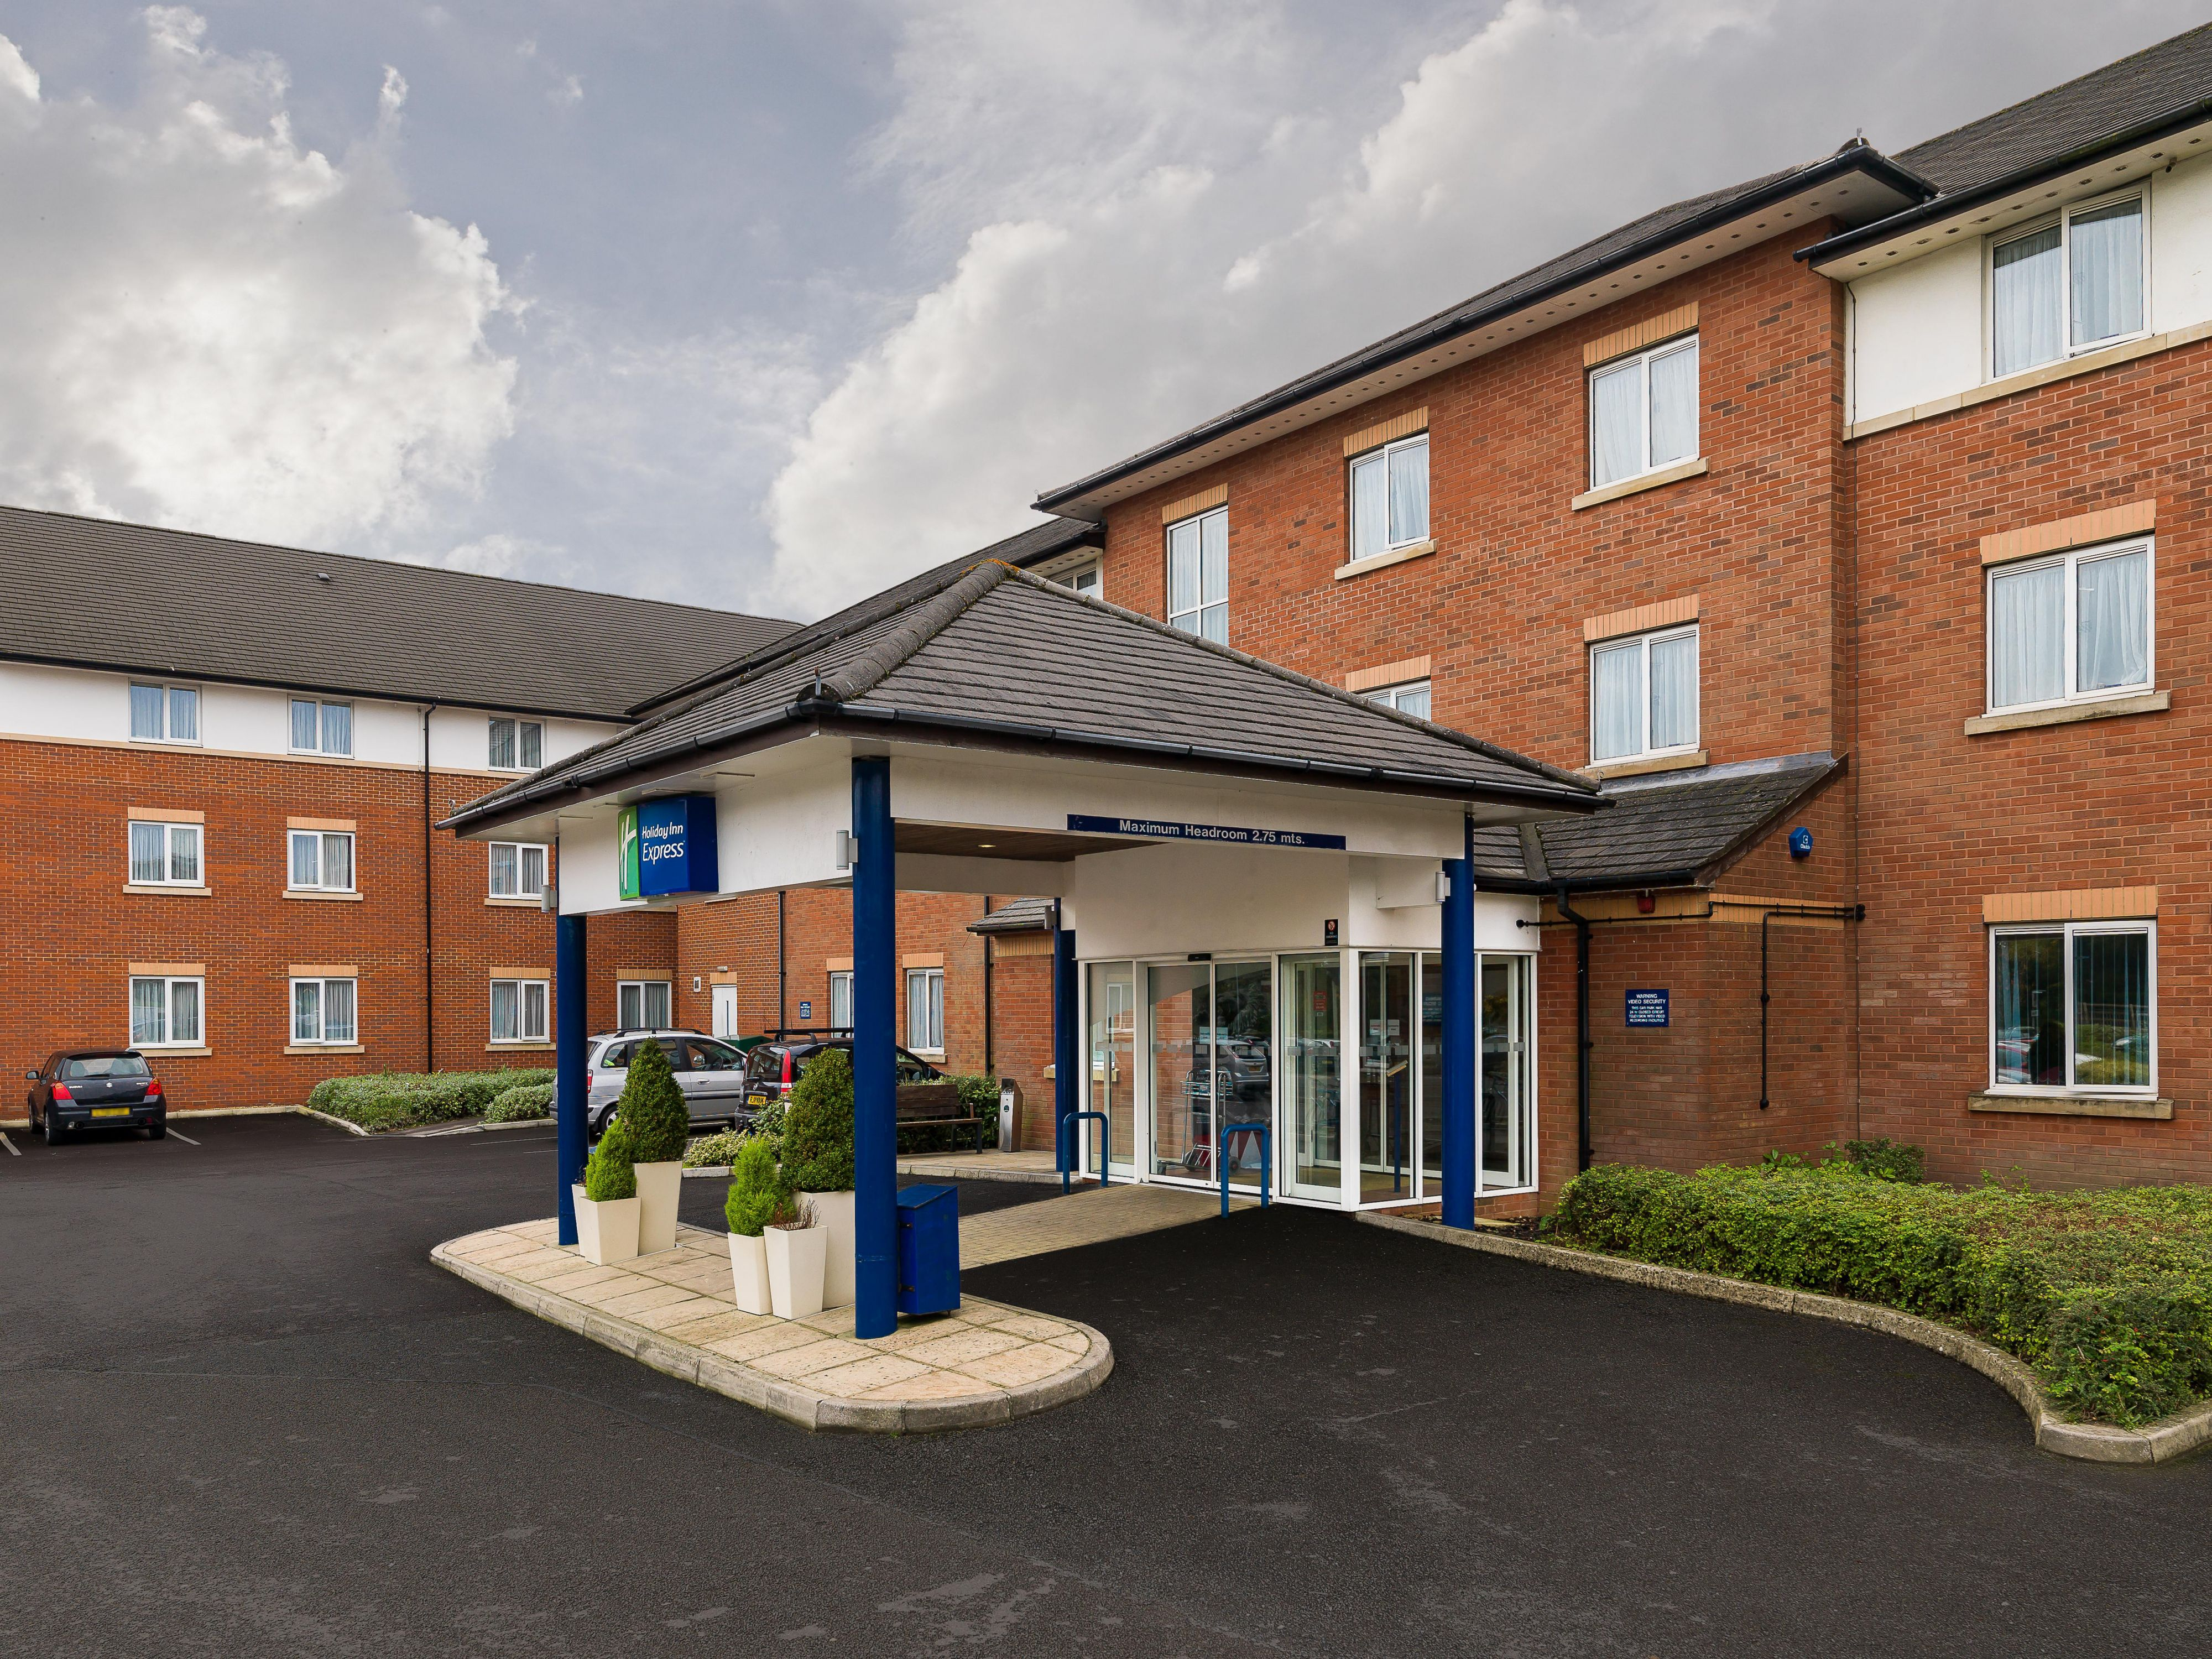 Holiday inn Express Gatwick Crawley Exterior